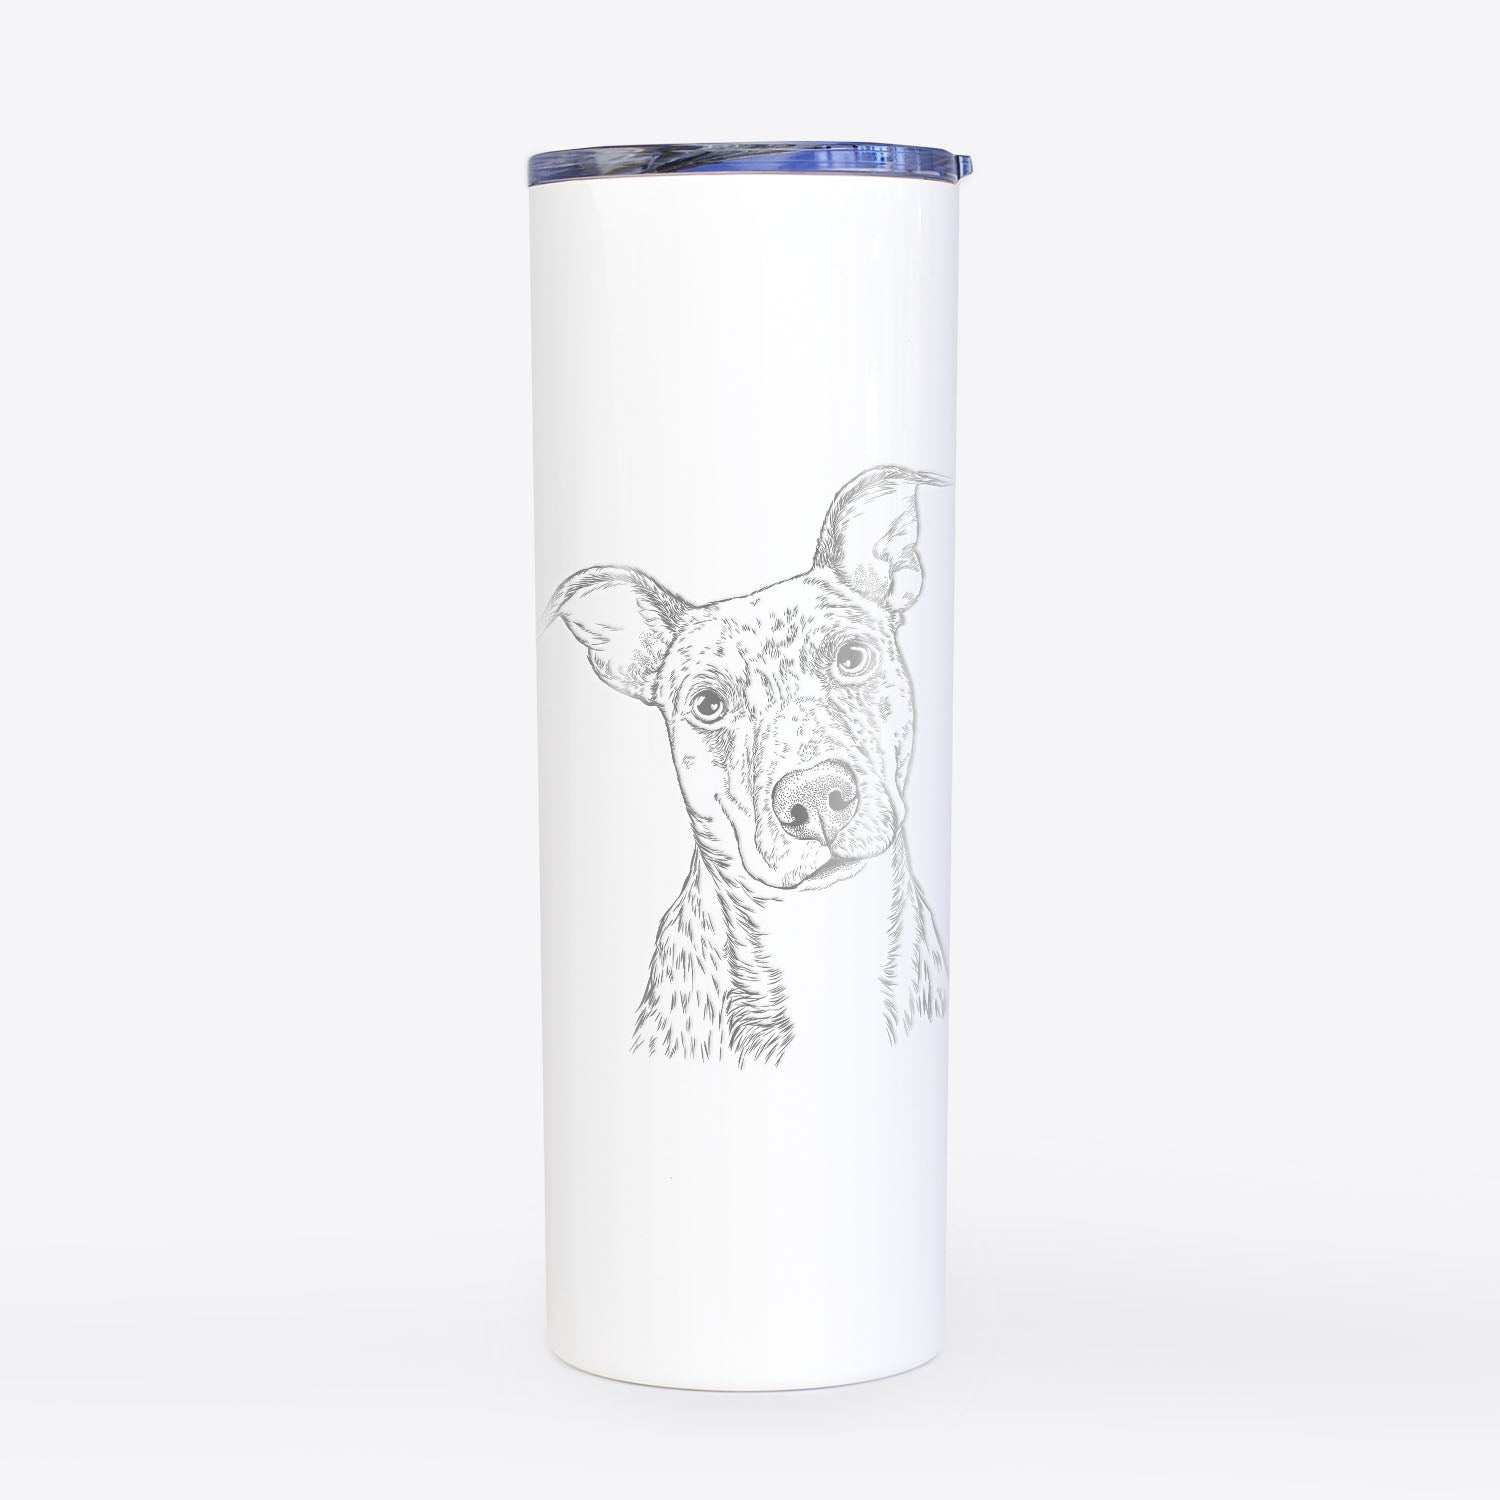 Bianca the Mixed Breed - 20oz Skinny Tumbler